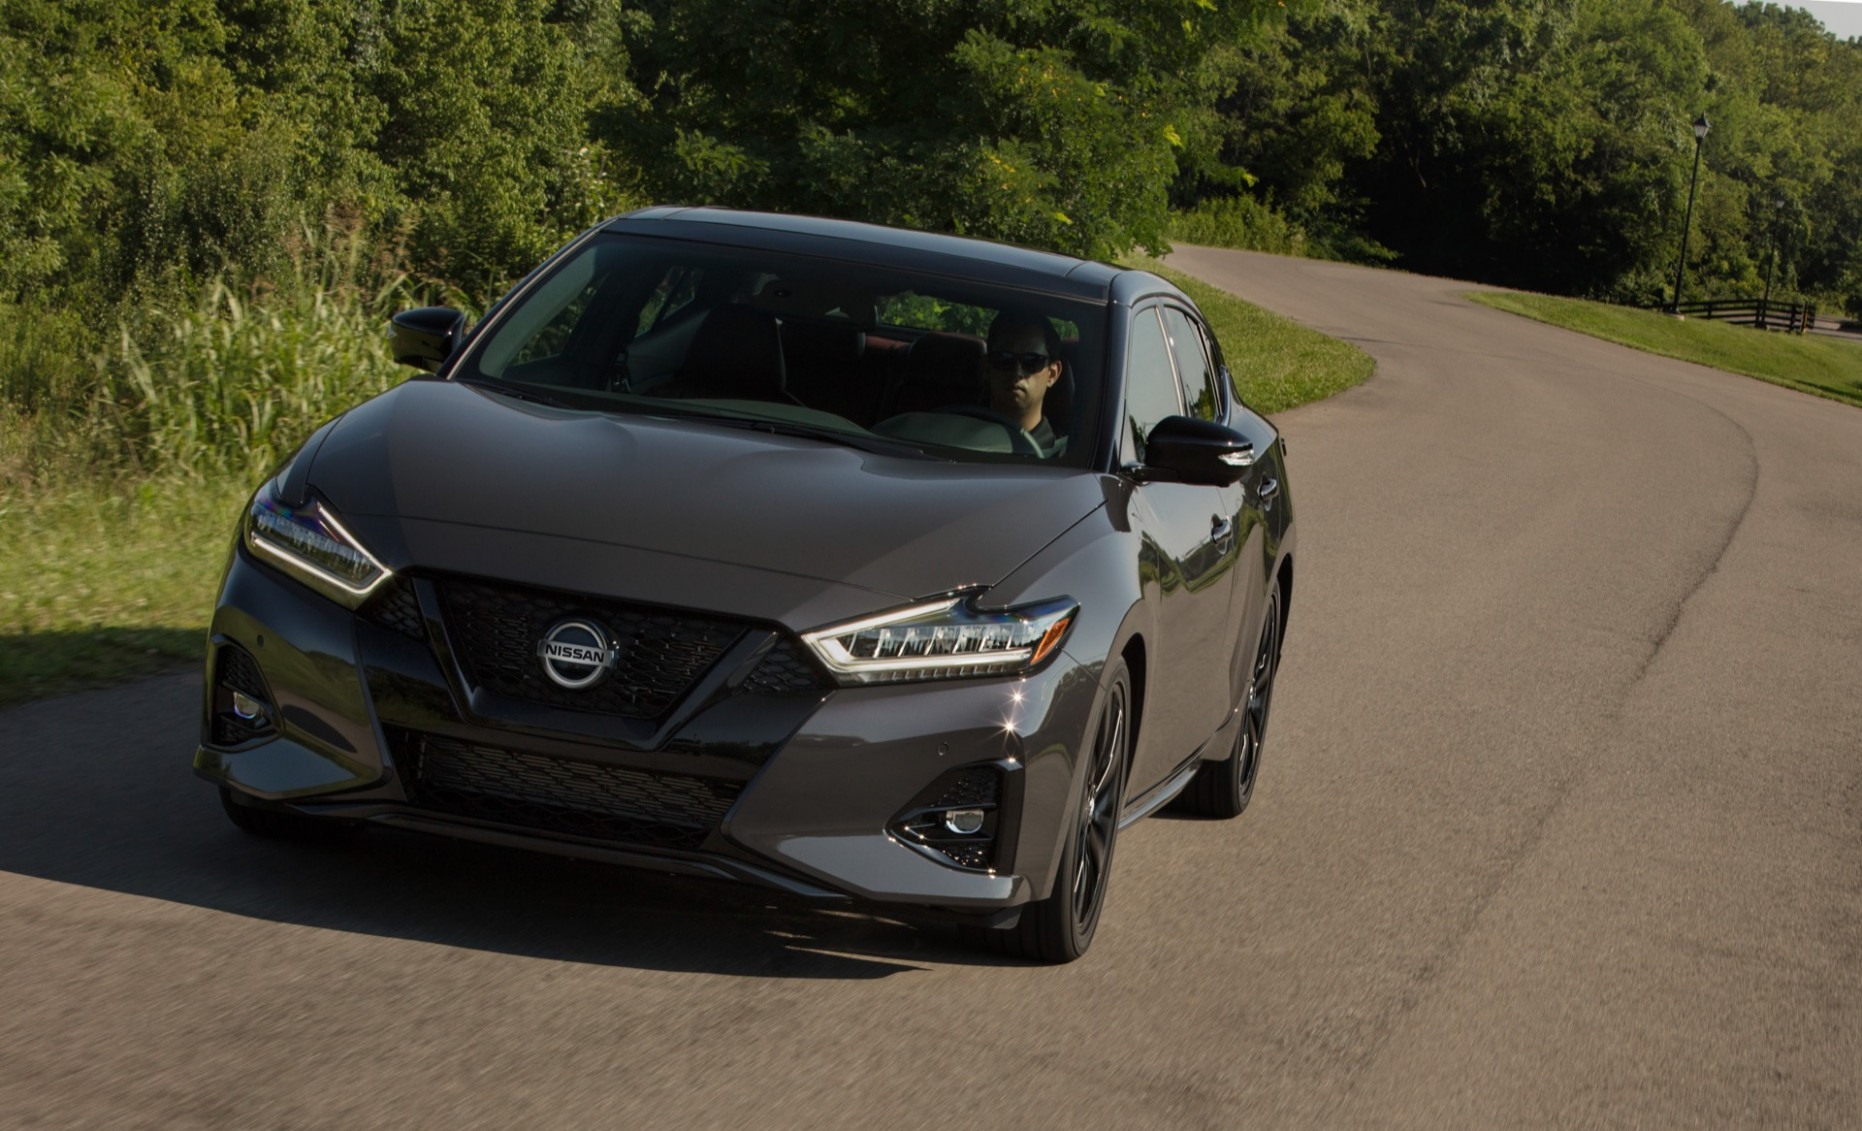 Price and Release date When Does The 2022 Nissan Maxima Come Out